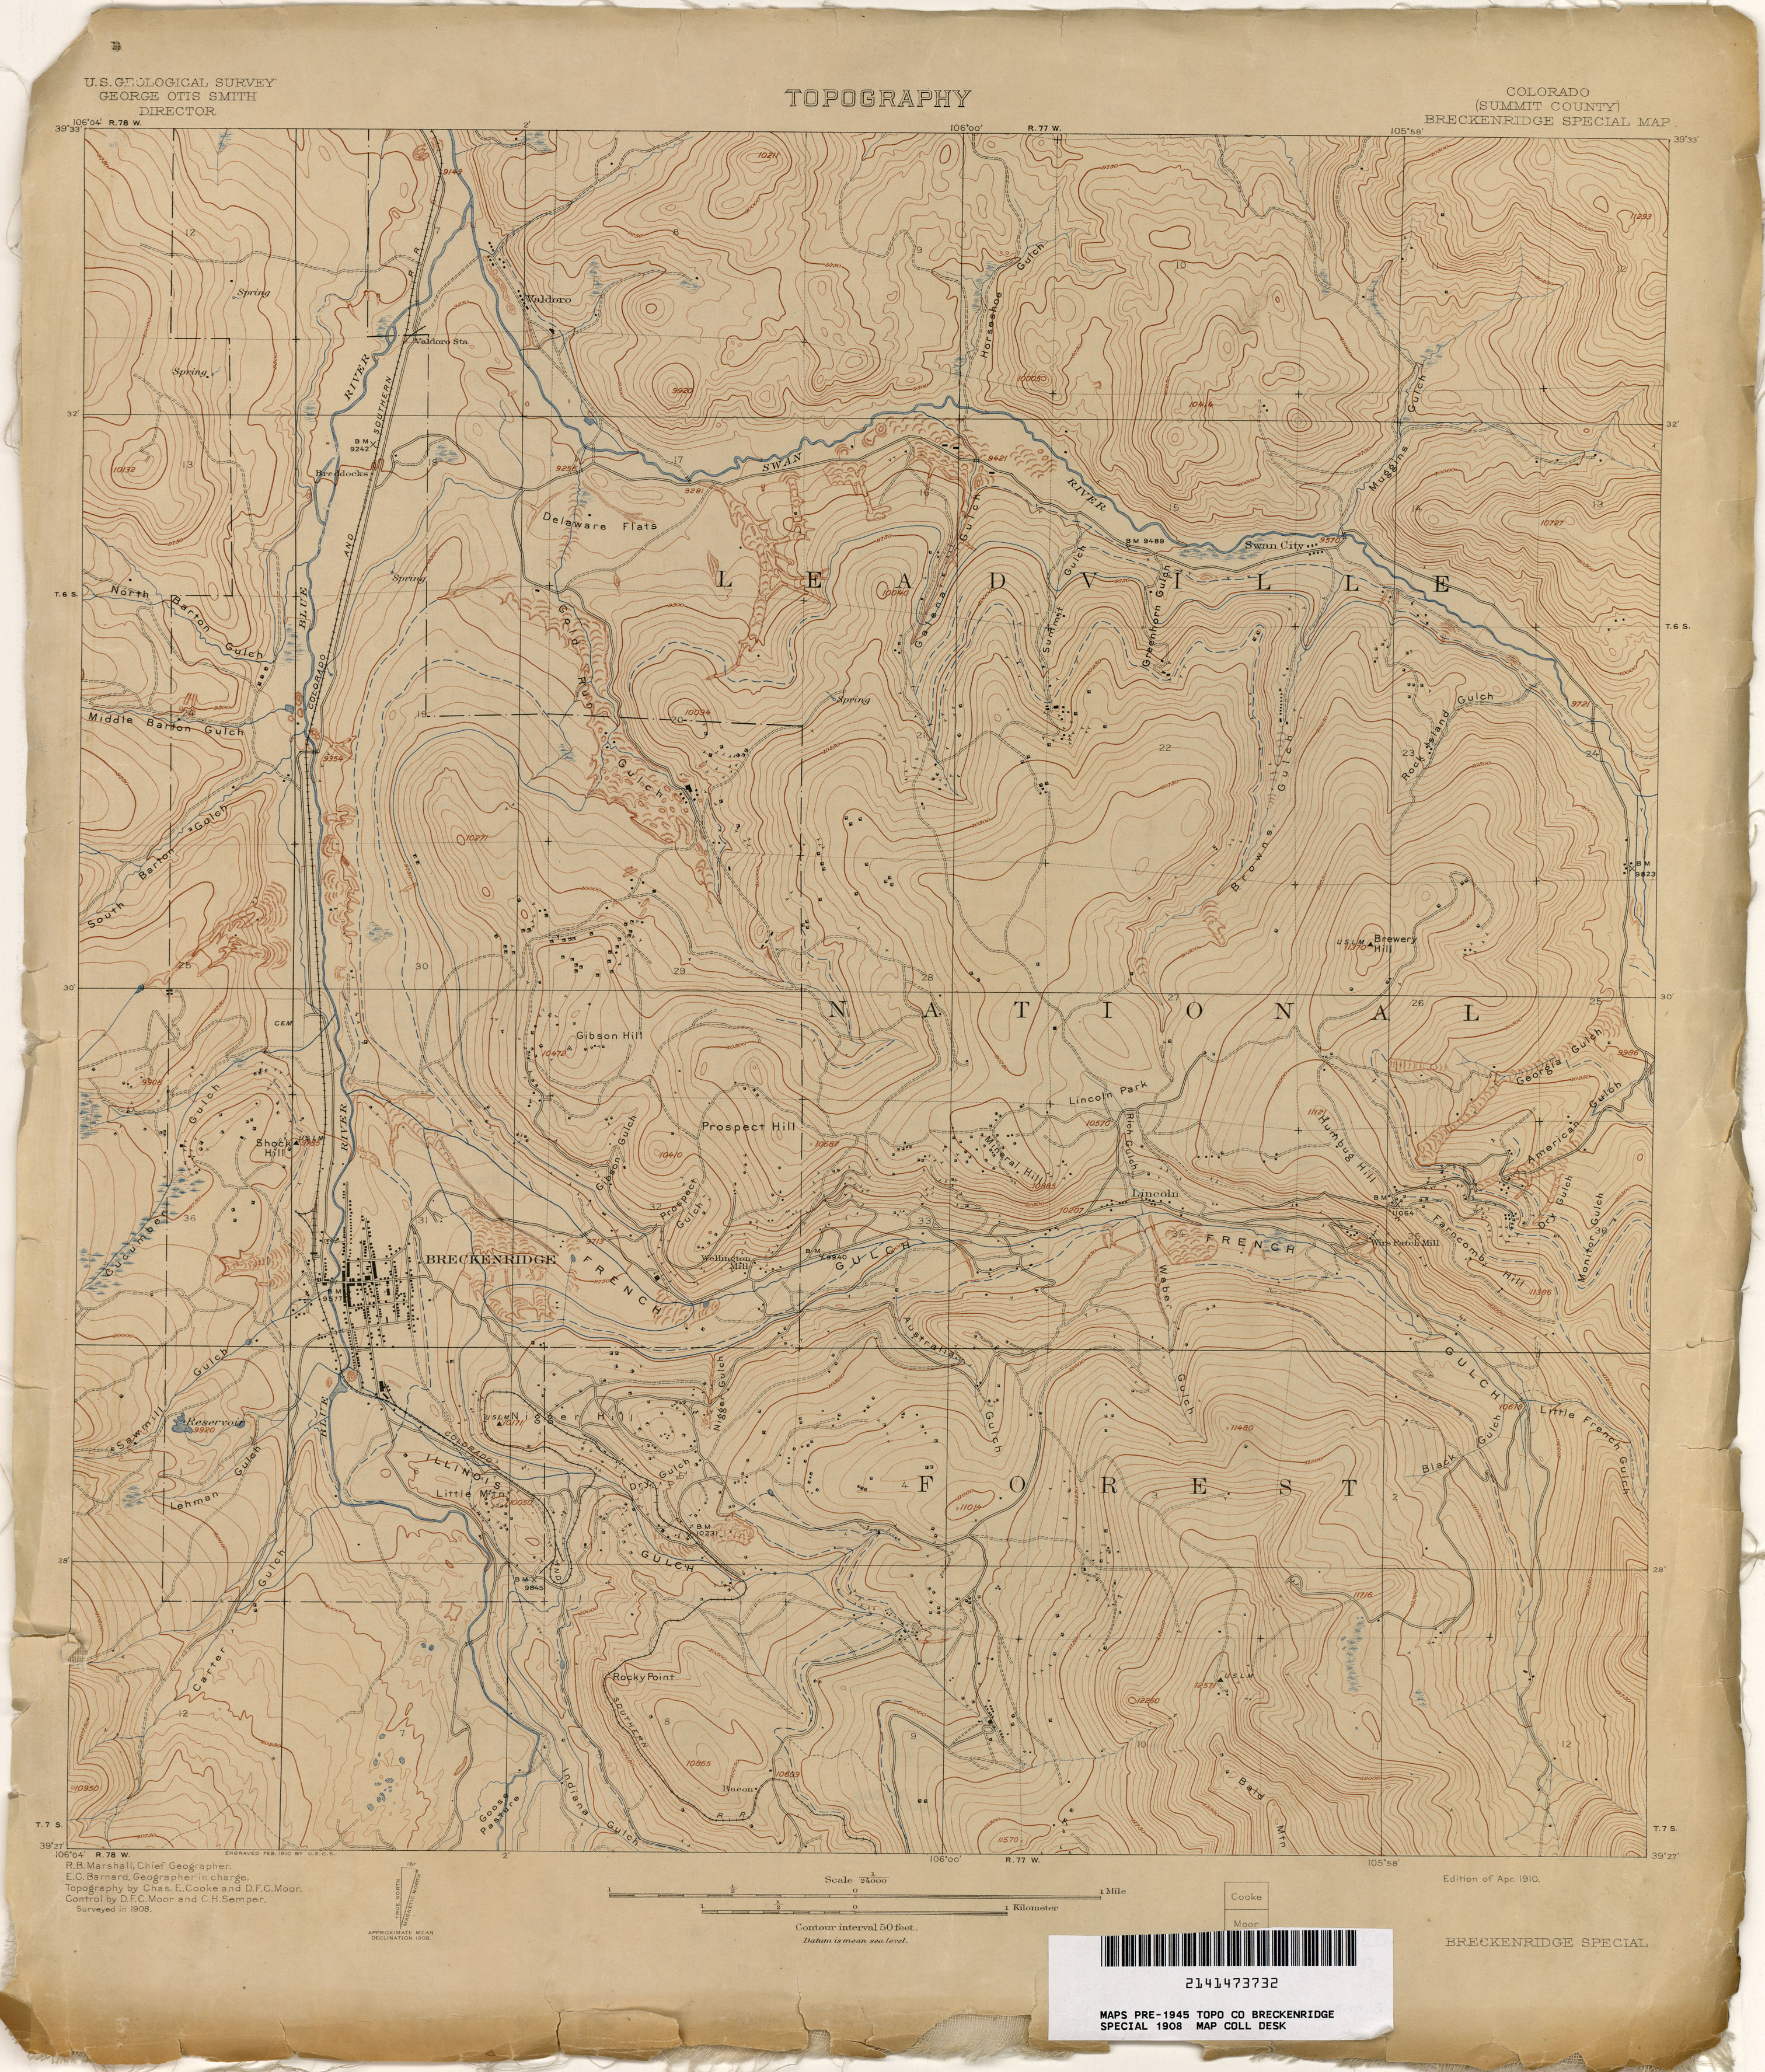 Colorado Historical Topographic Maps PerryCastañeda Map - Map of colrado